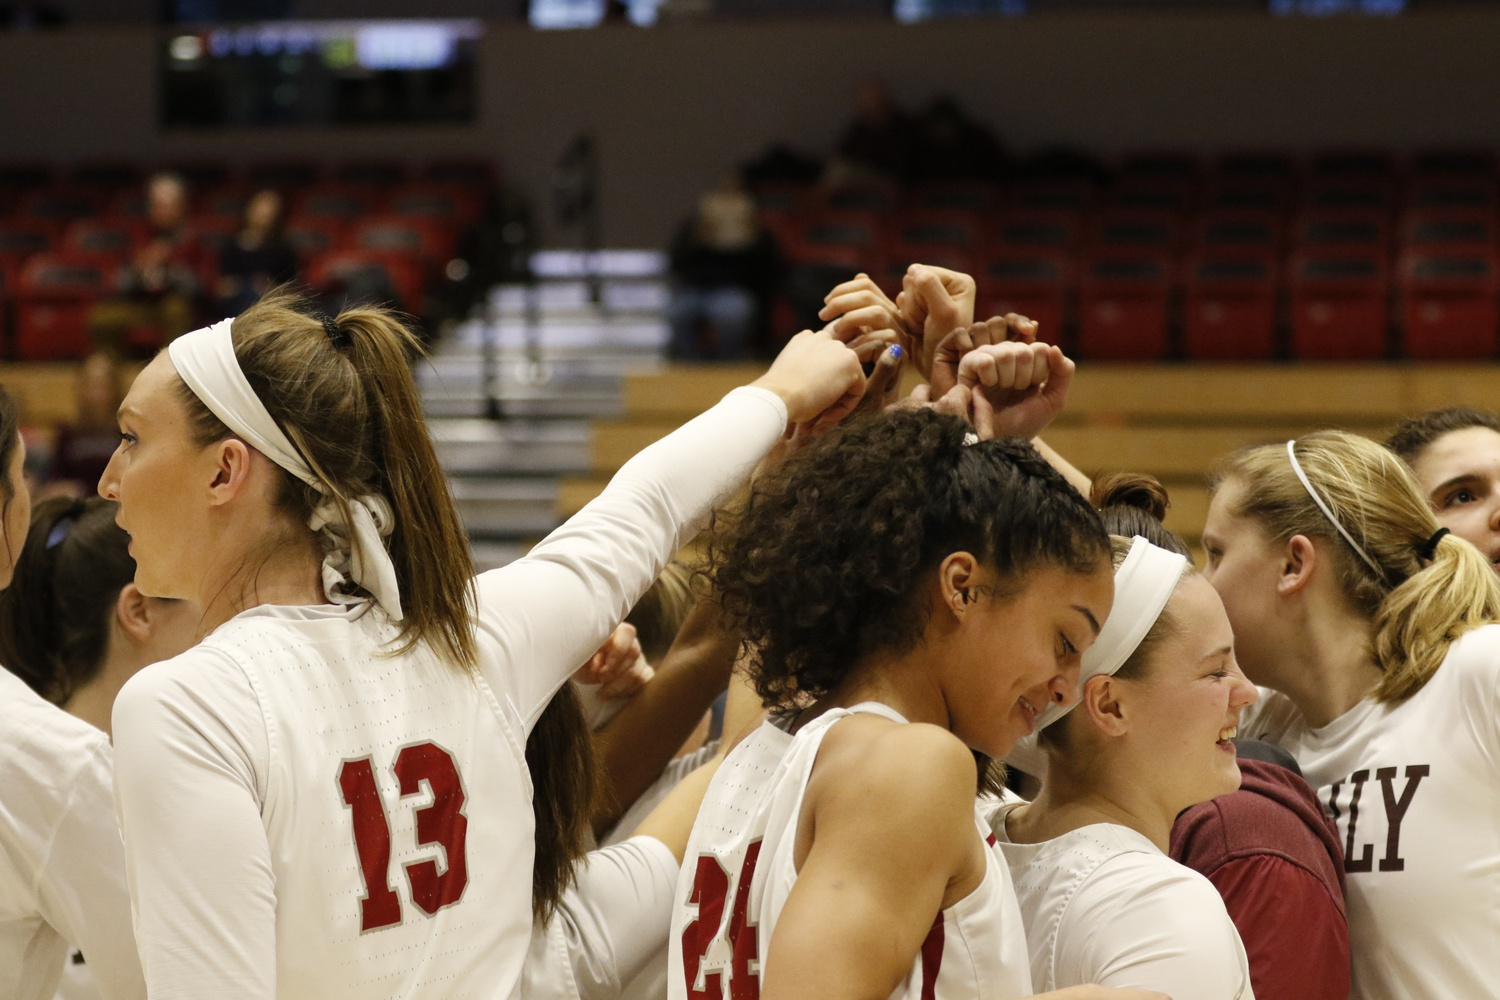 The Crimson will put out a young side this season as it seeks to avenge last season's loss to Penn in the Ivy playoff semifinals.